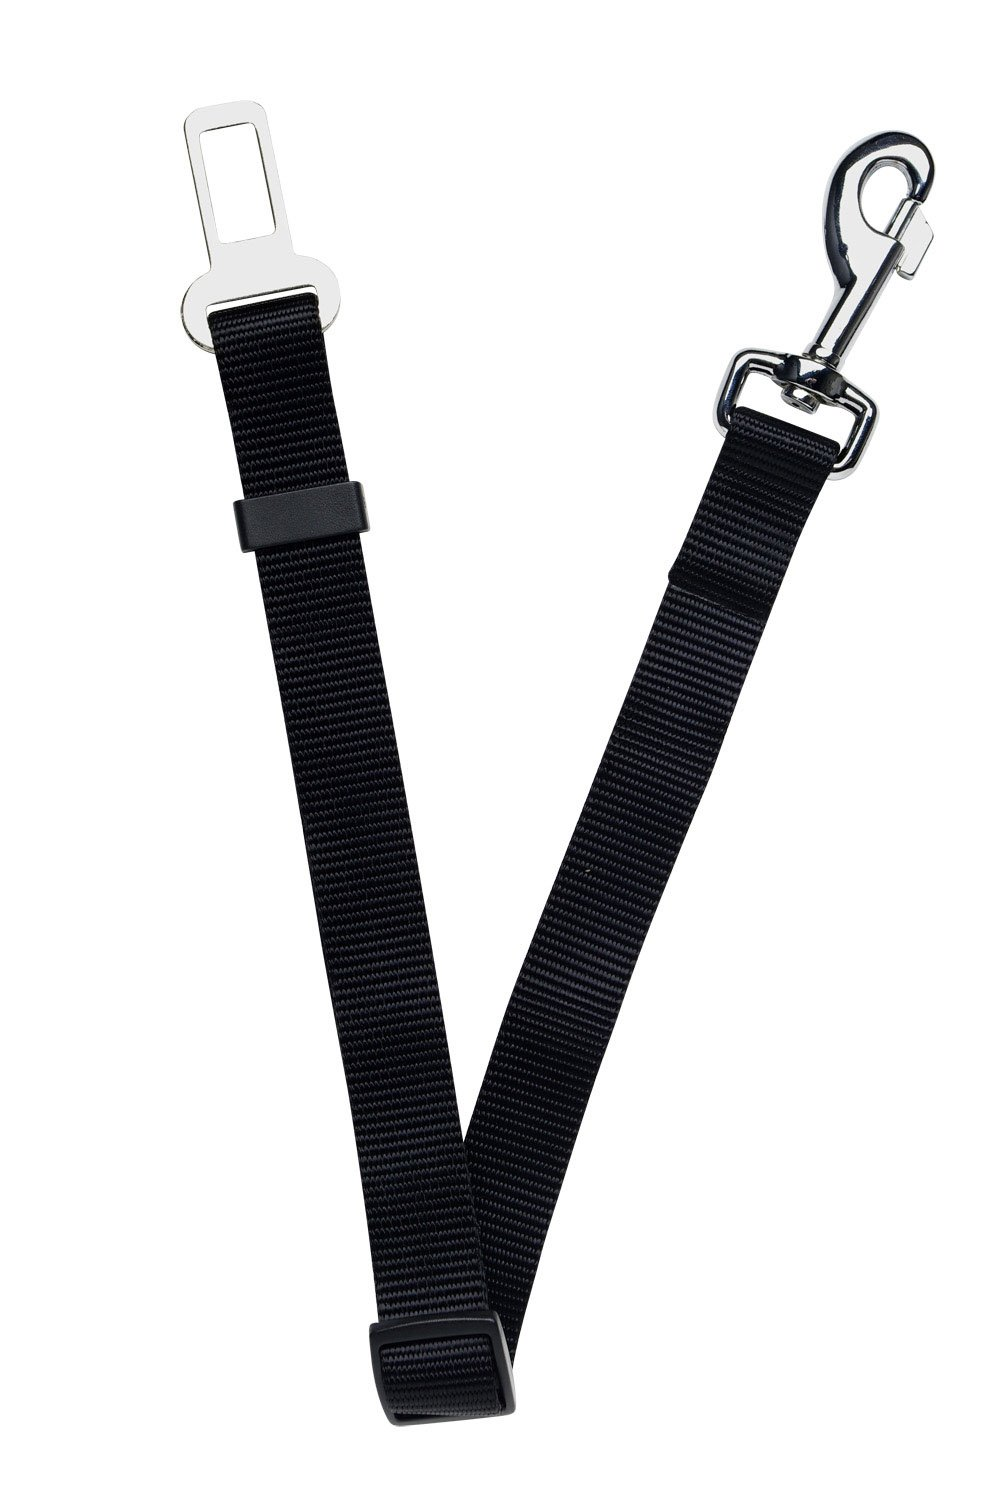 Dogit Car Safety Belt Universal Attachment, Black 25mm x 55-87cm (1'' x 21.6'' - 34.3'') by Dogit